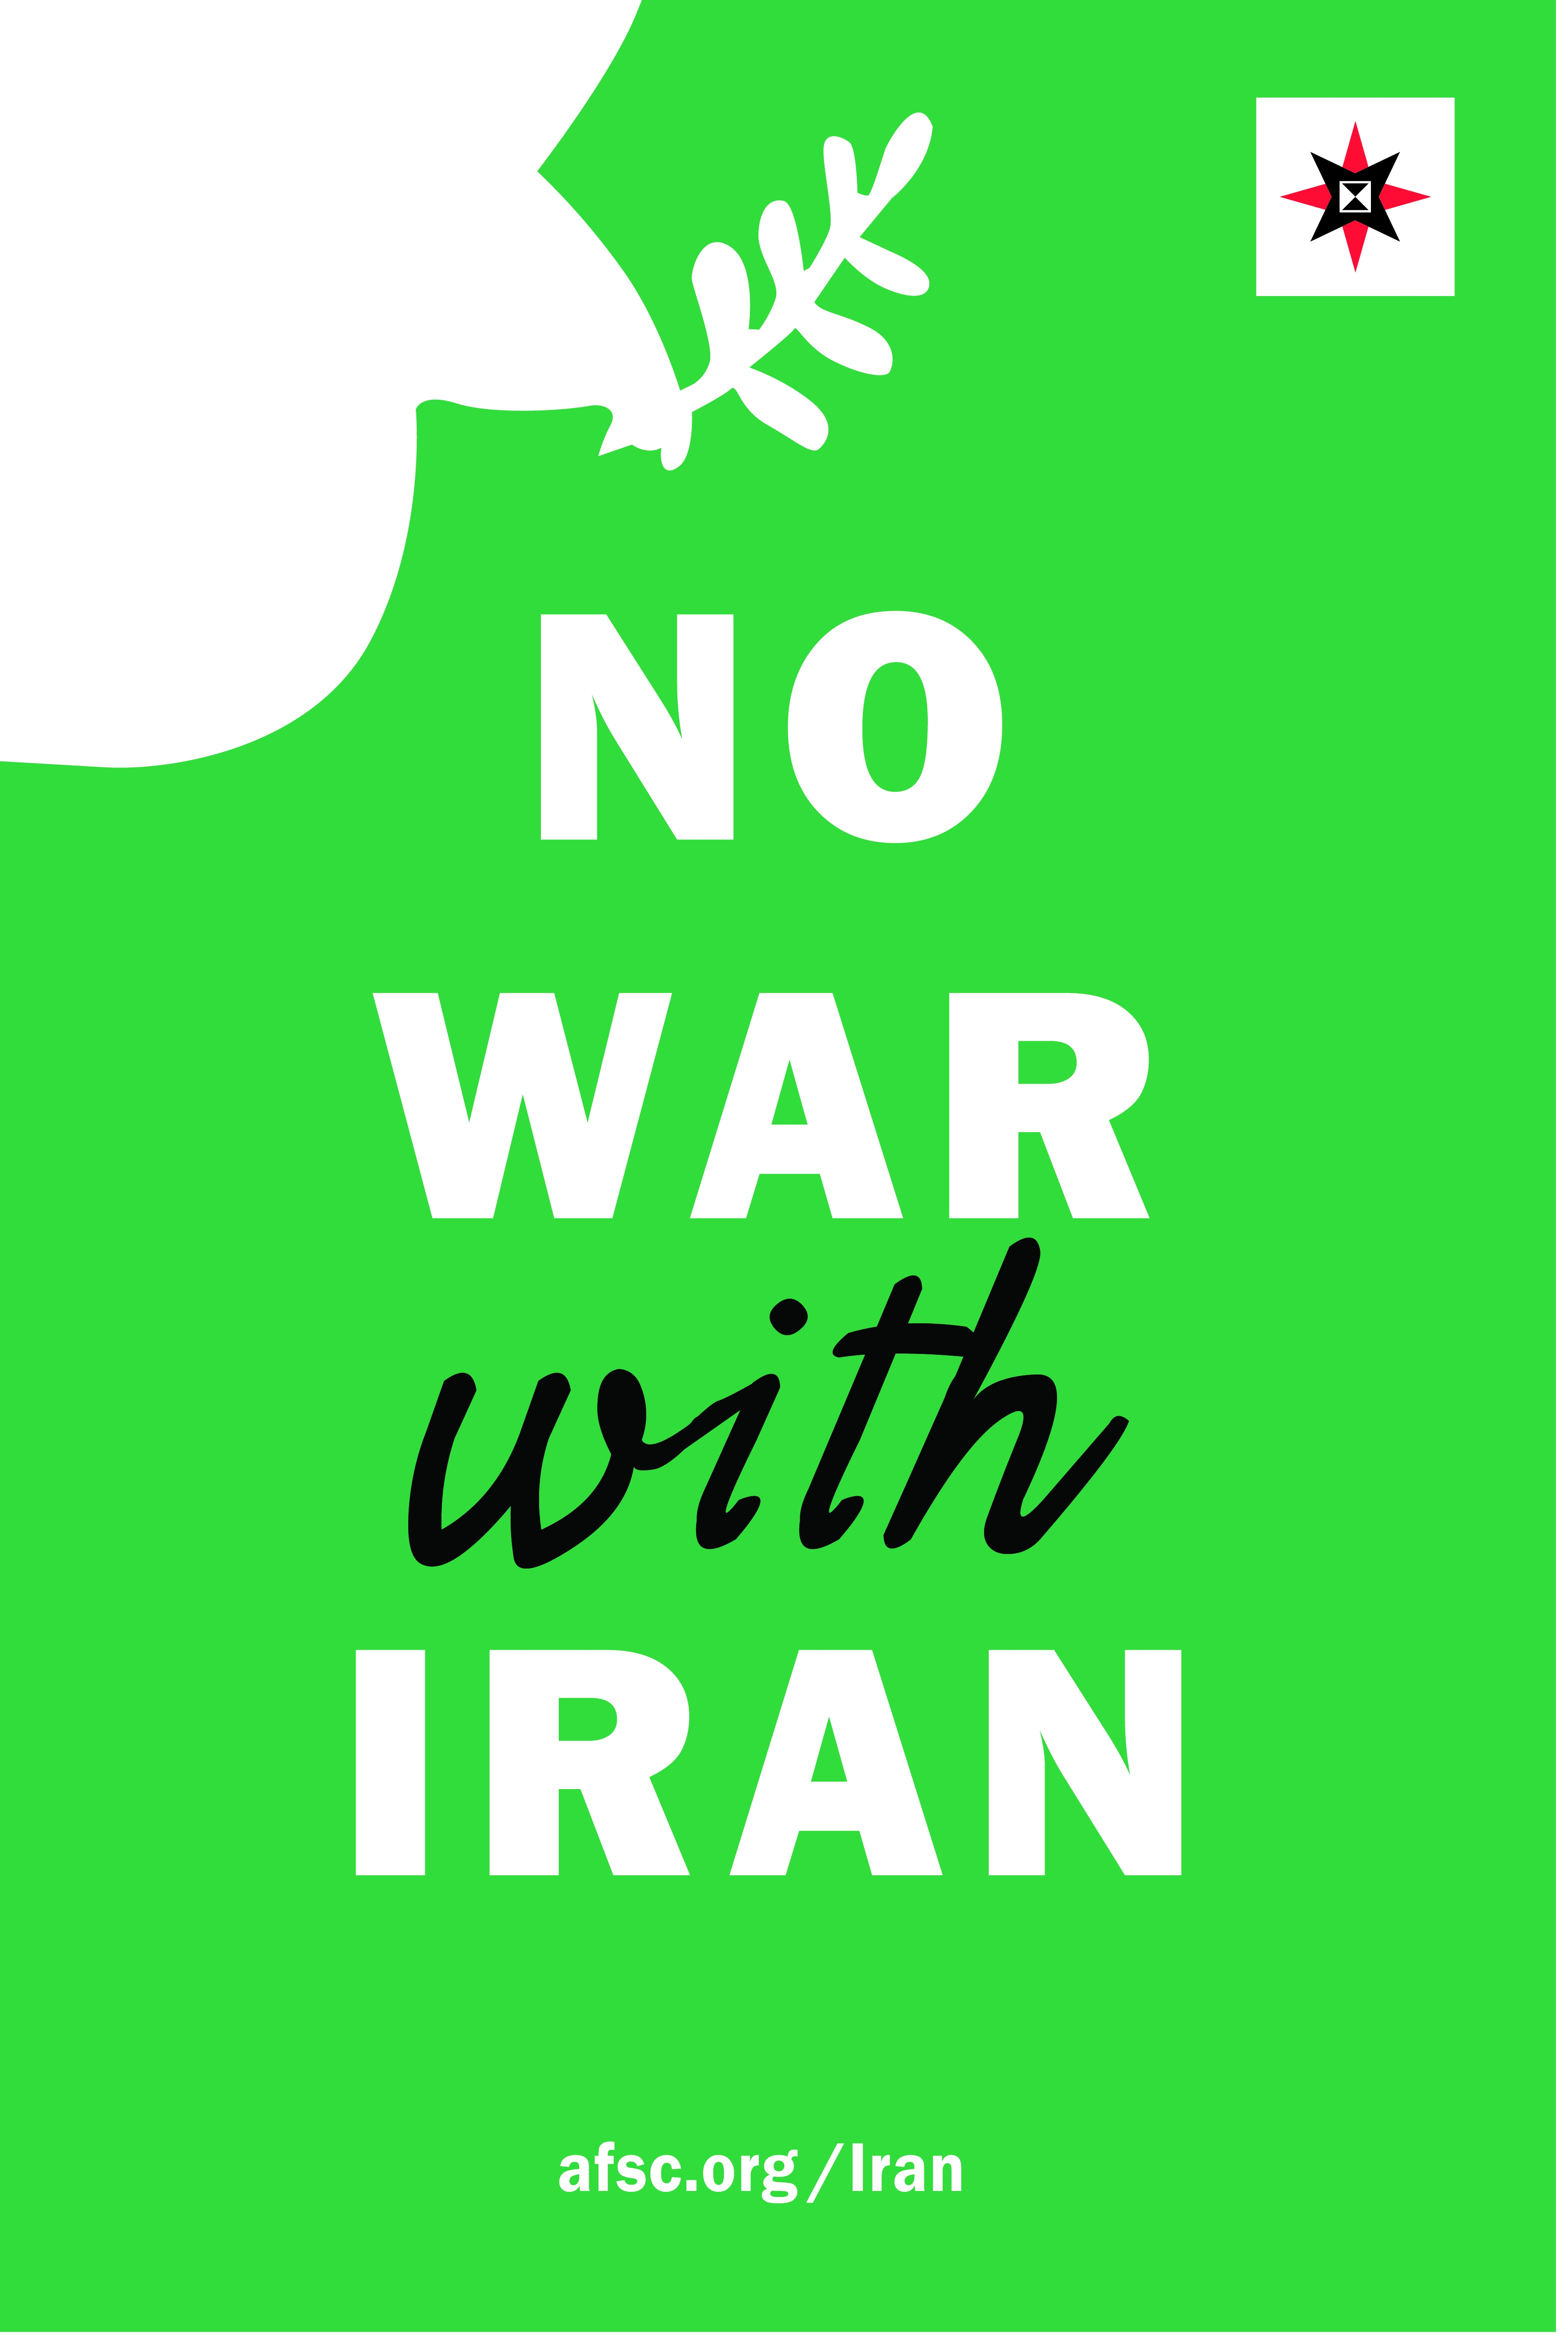 No war with Iran poster (green)